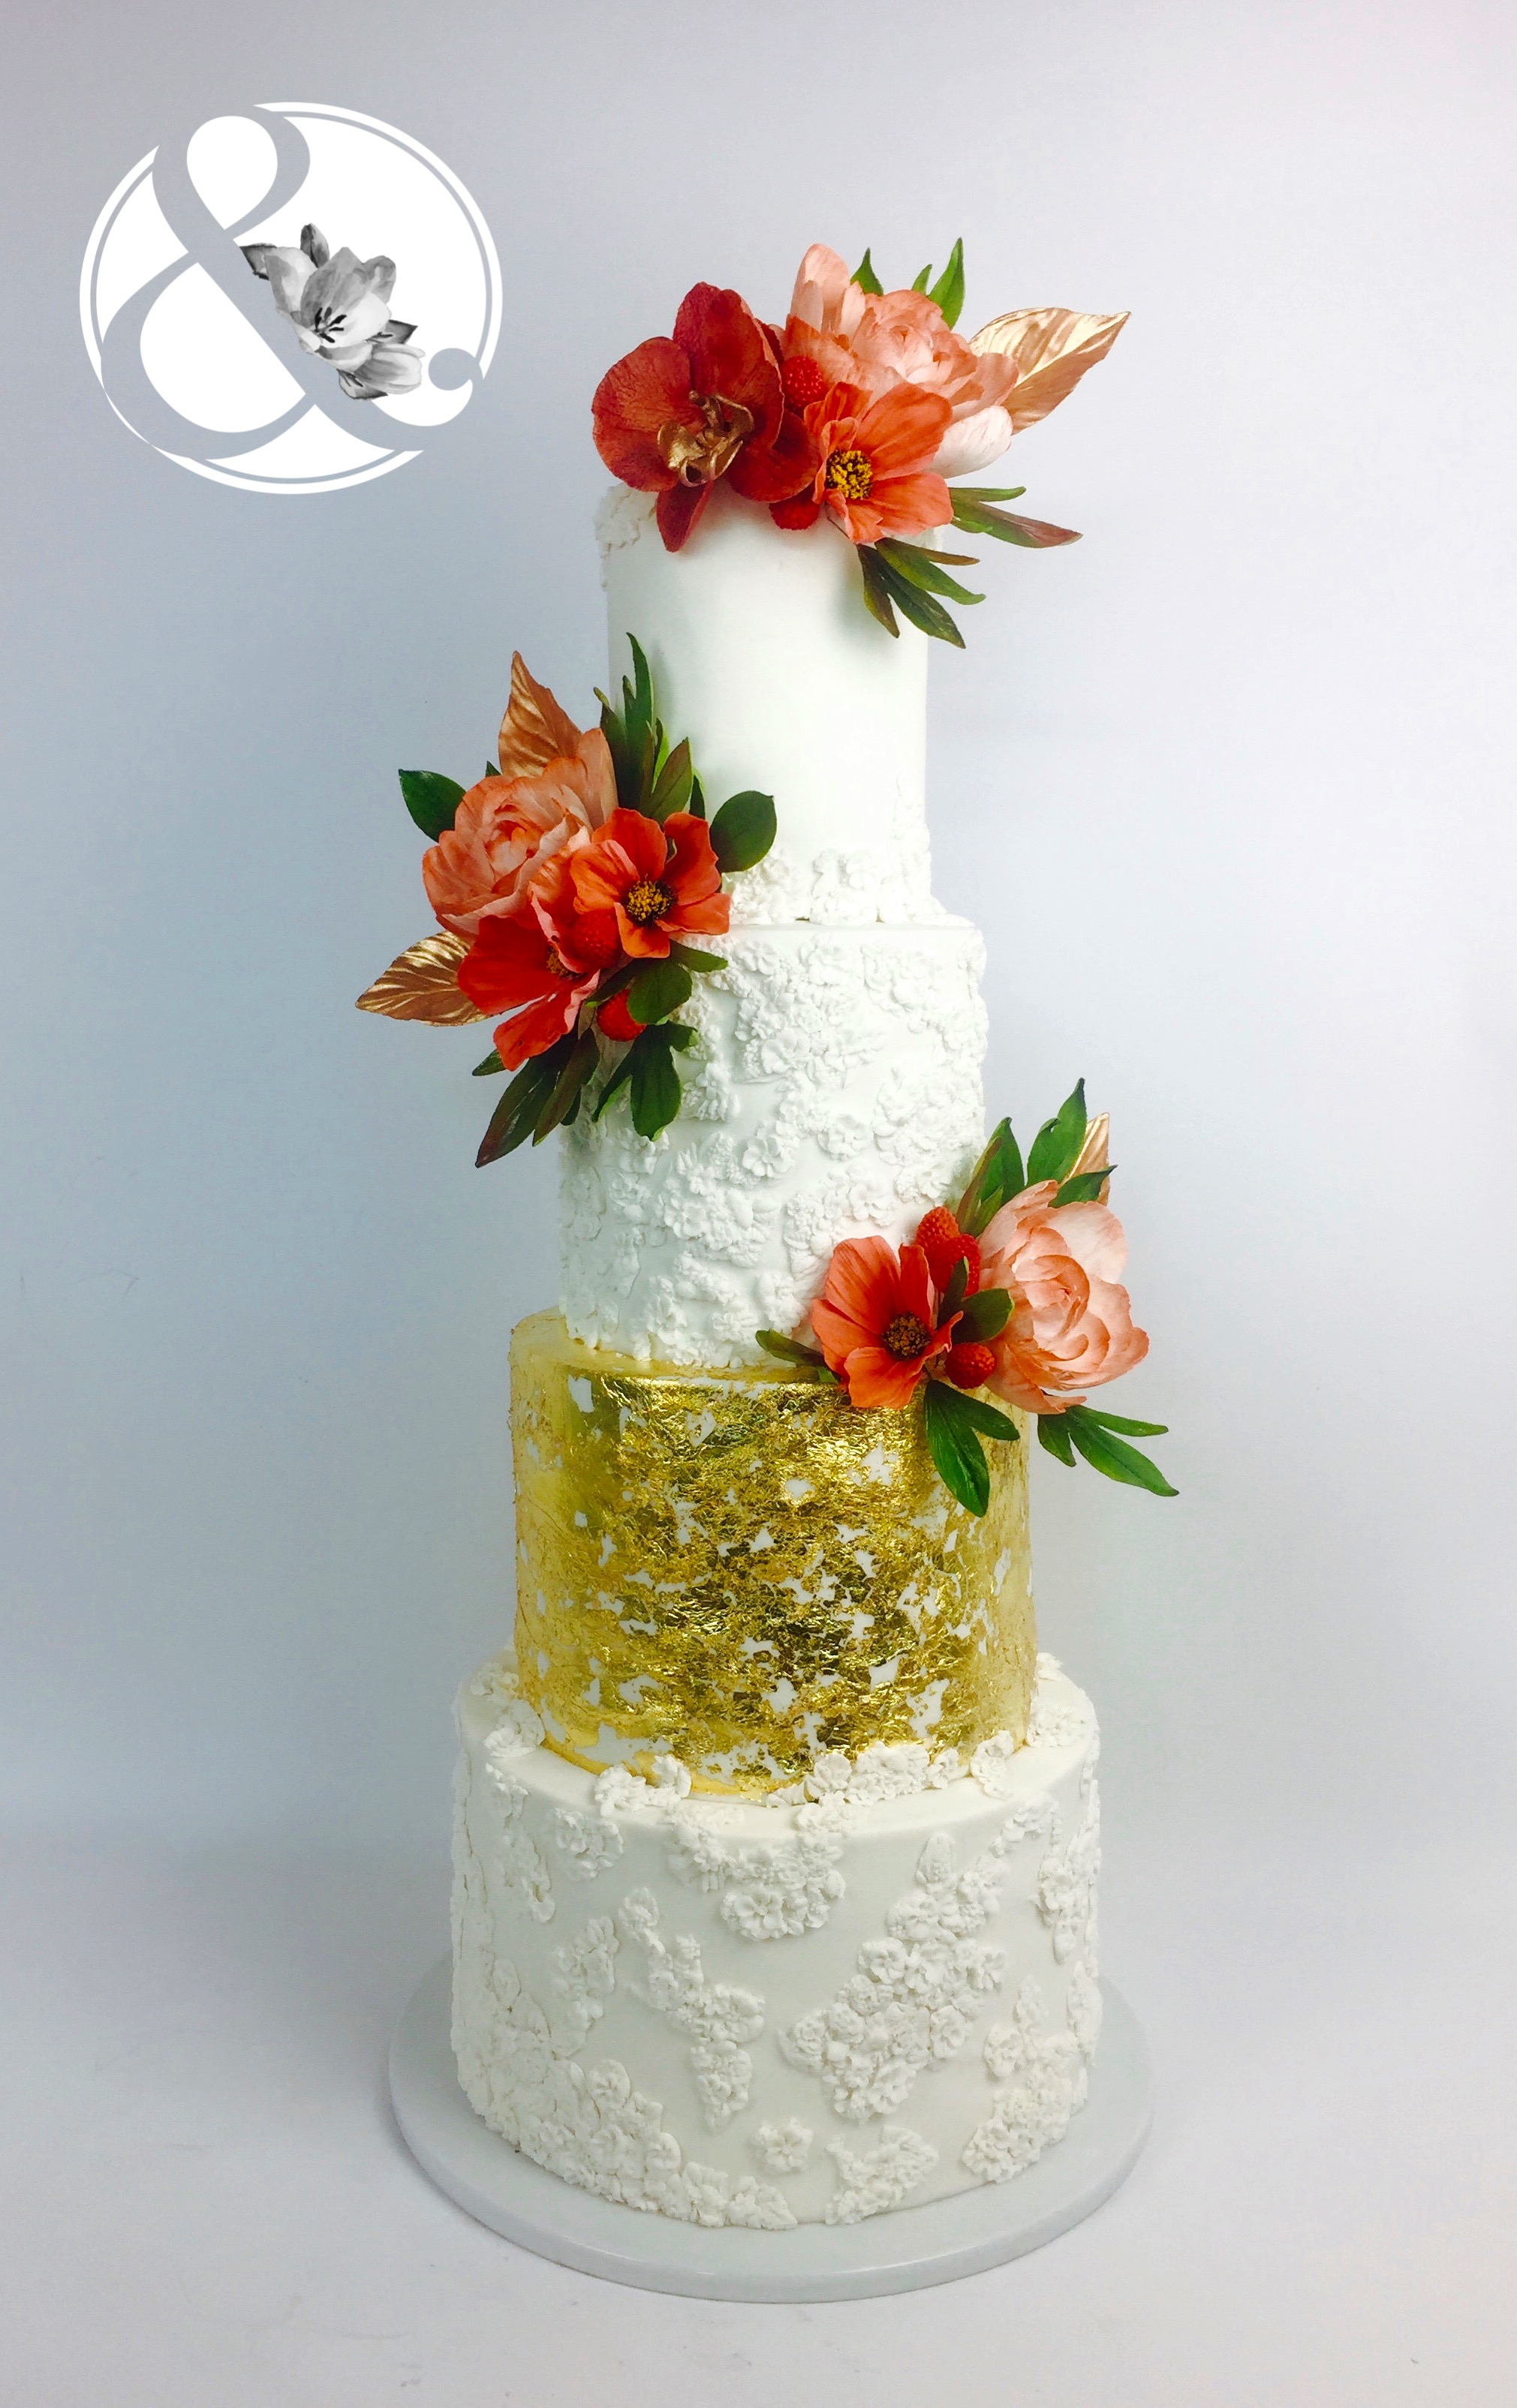 White and gold wedding cake with  red sugar flowers